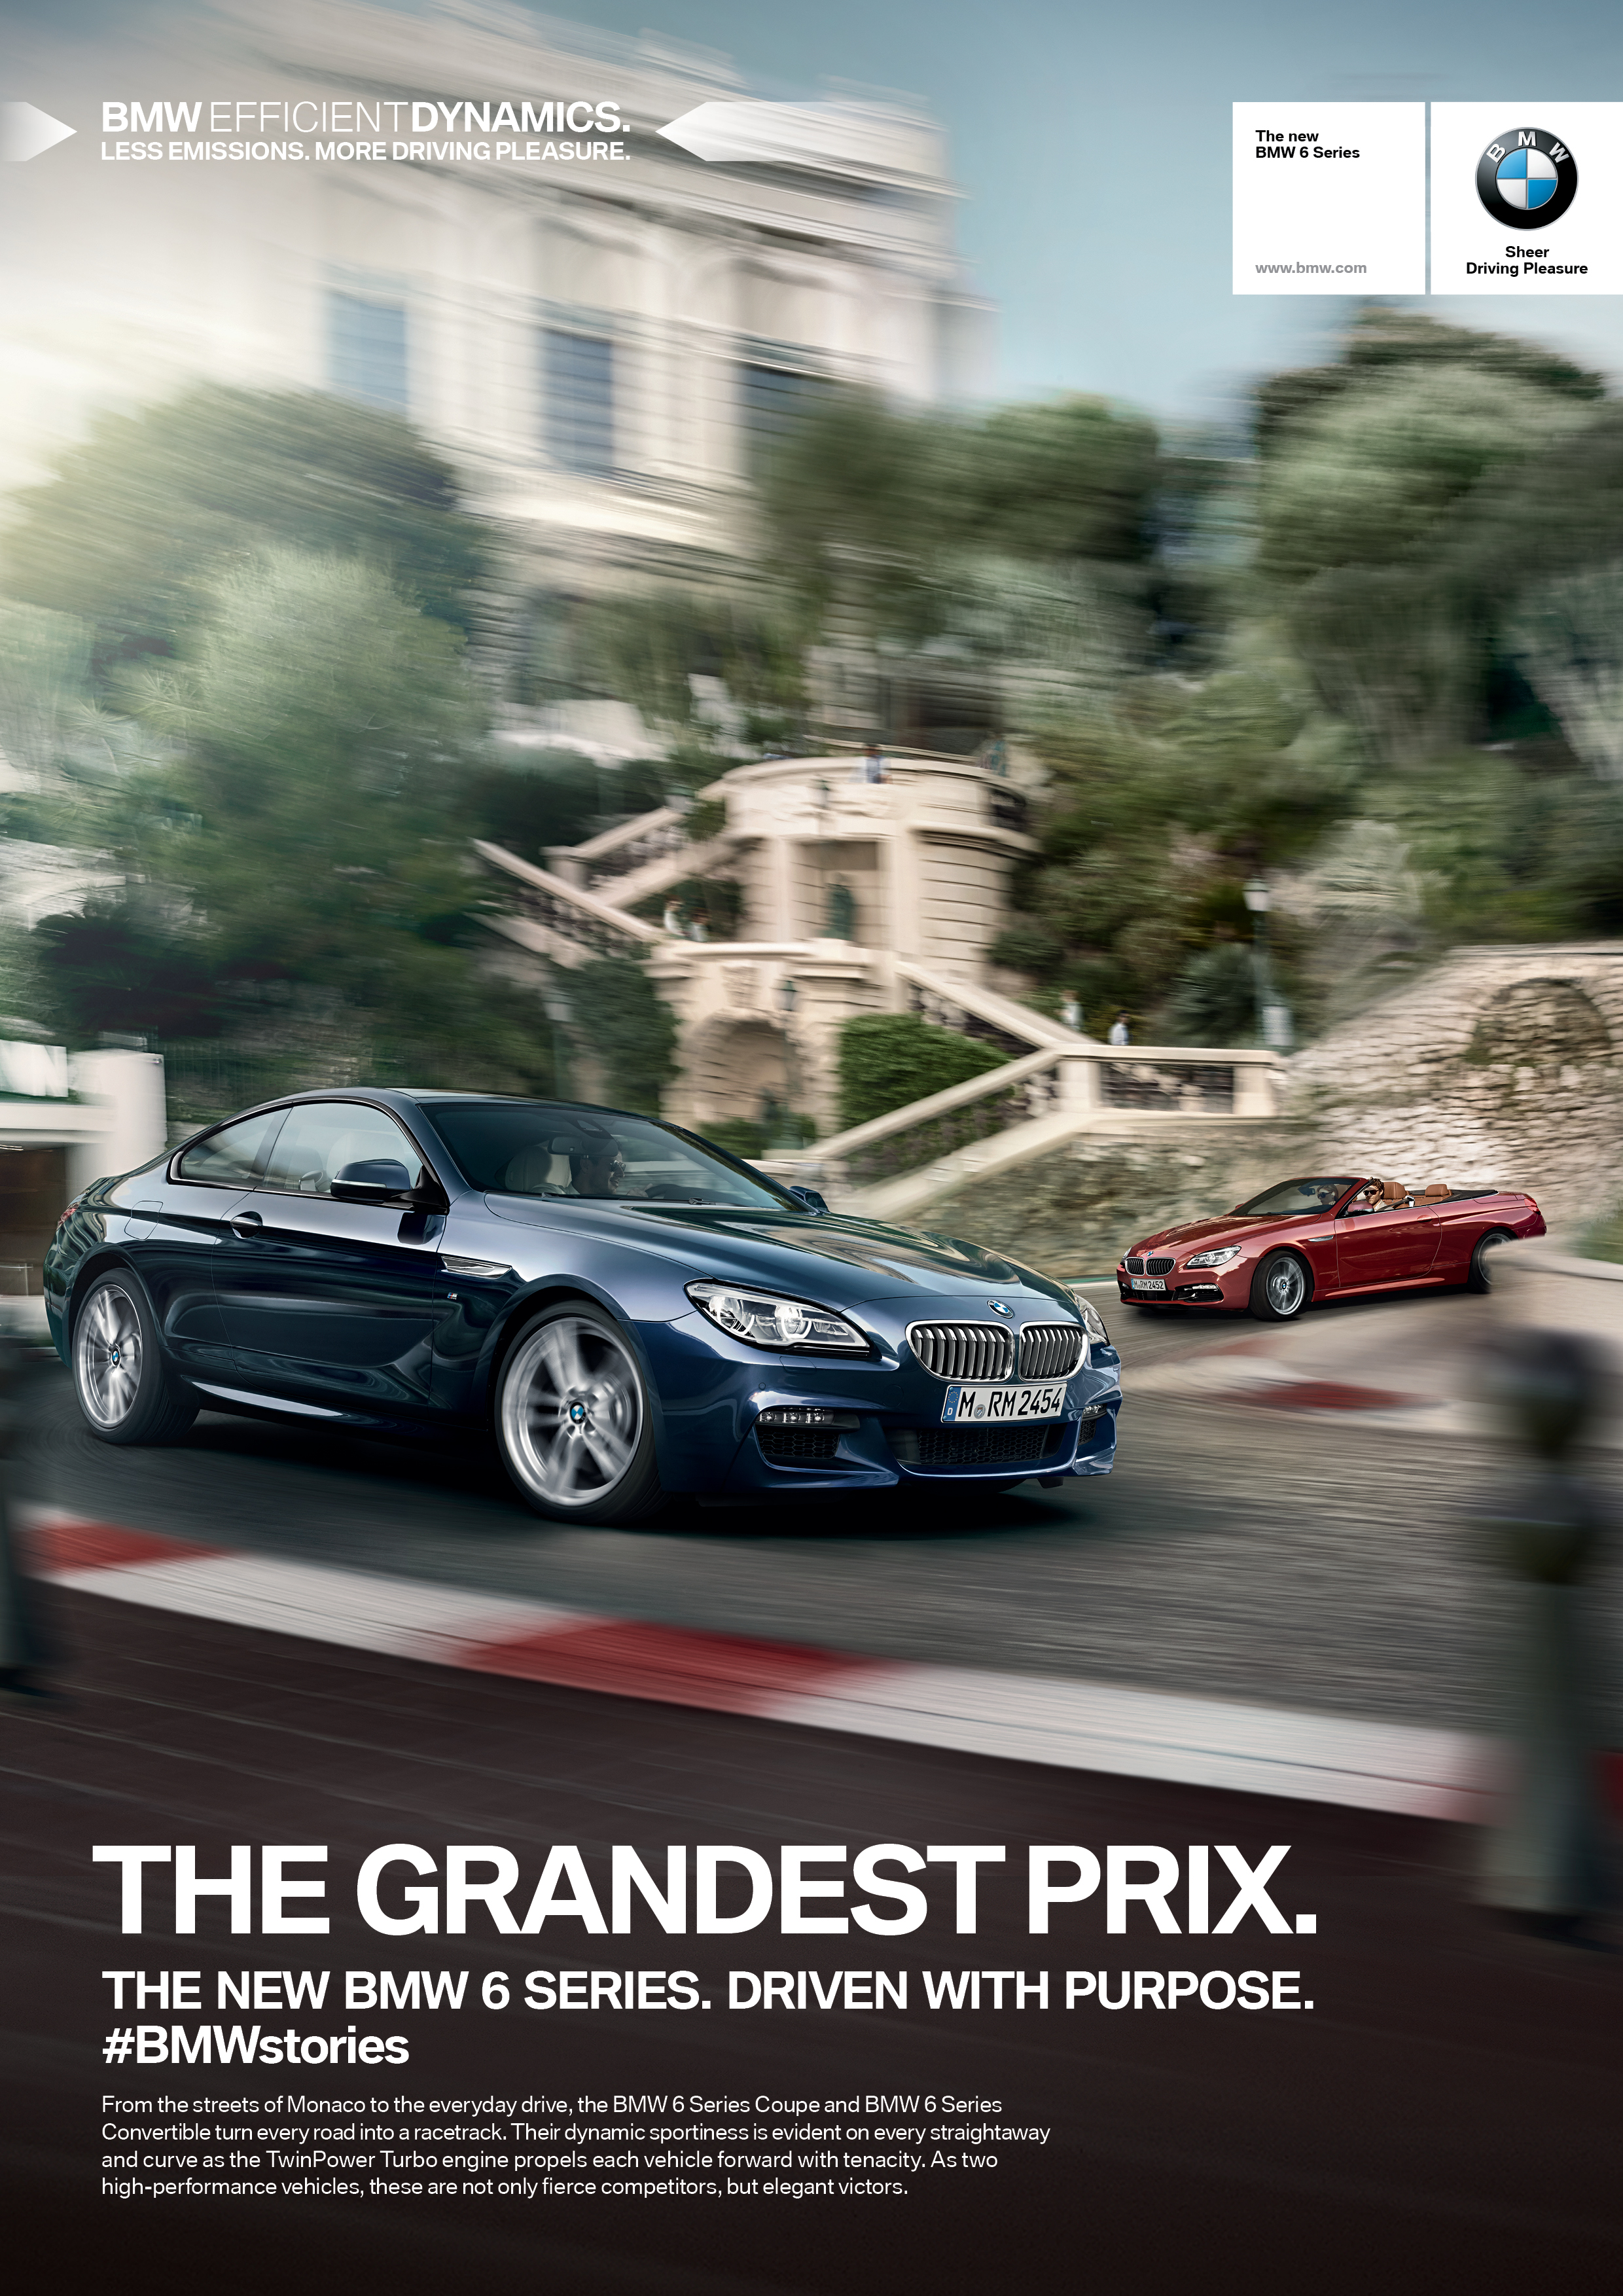 BODY COPY   From the streets of Monaco to the everyday drive, the BMW 6 Series Coupe and the BMW 6 Series Convertible turn every road into a racetrack. Their dynamic sportiness is evident on every straightaway and curve as the TwinPower Turbo engine propels each vehicle forward with tenacity. As two high-performance vehicles, these are not only fierce competitors, but elegant victors.